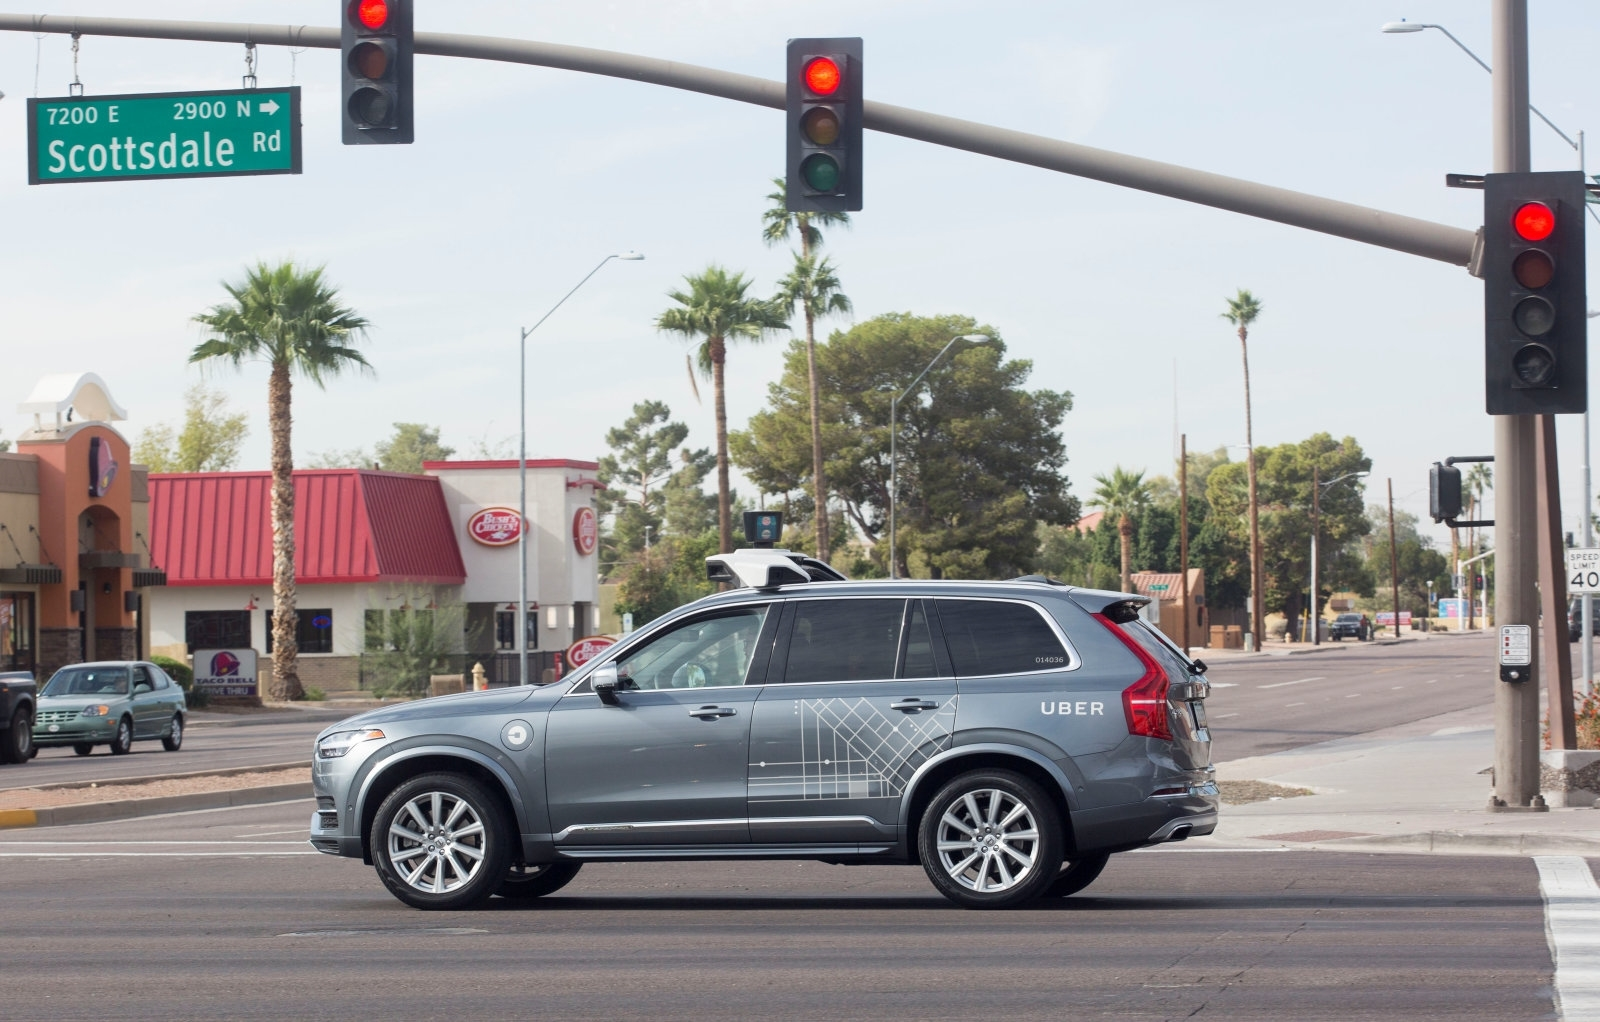 Uber settles with family of pedestrian hit by its self-driving SUV